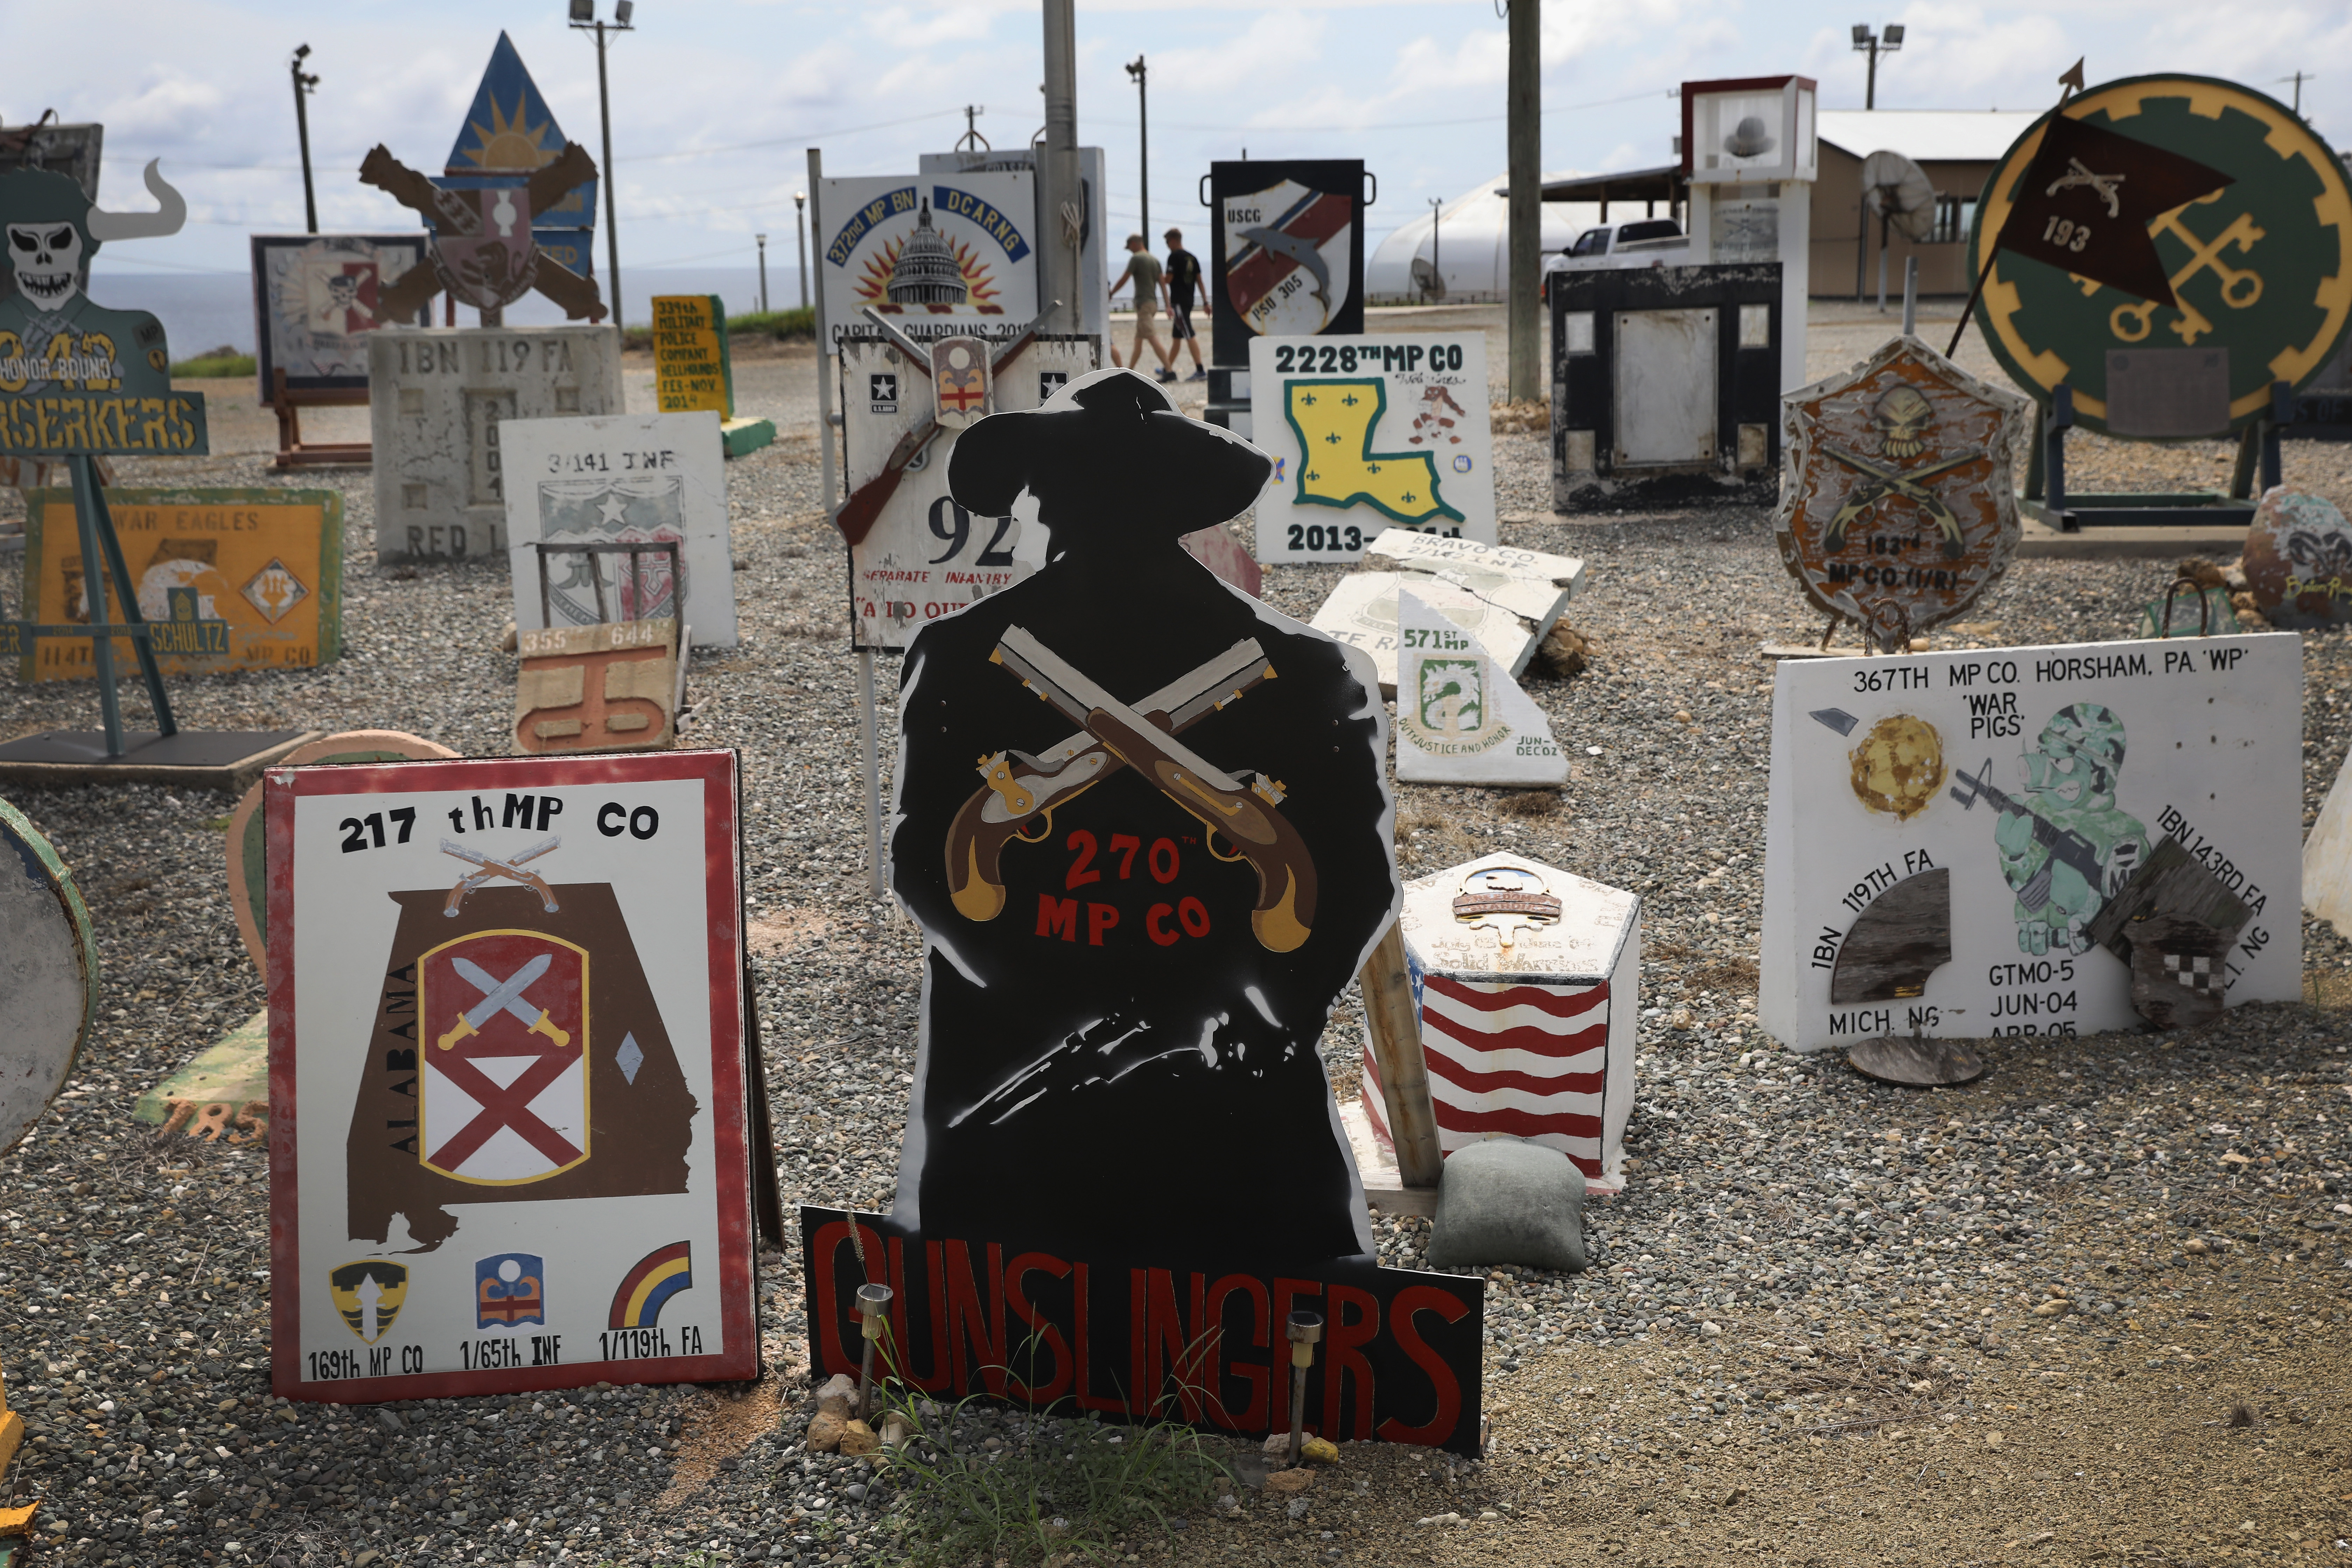 Displays created and left by previous military units fill the  boneyard  of a prison guard camp at the U.S. detention center at Guantanamo Bay on Oct. 22, 2016.